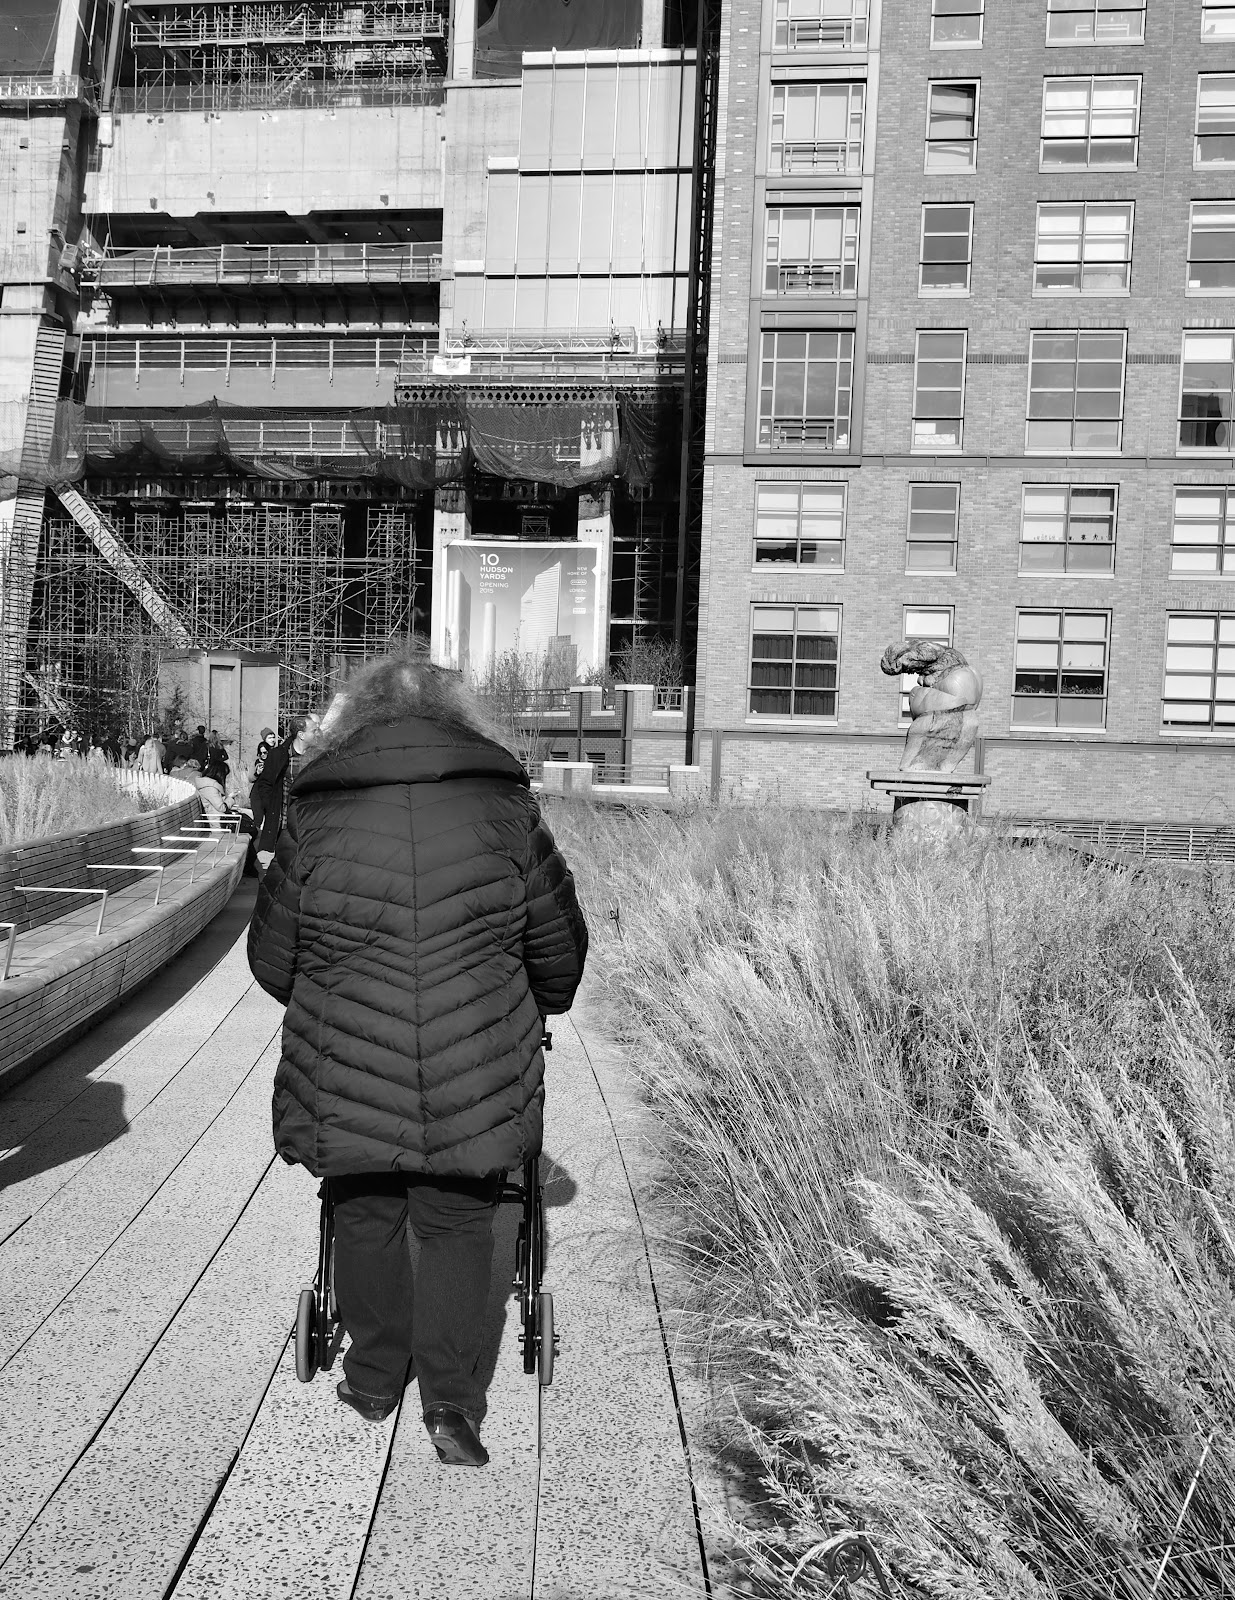 From Behind :: the HIghline #FromBehindtheHighline #NYC #thehighline #frombehind #walker #assistivedevice ©2014 Nancy Lundebjerg